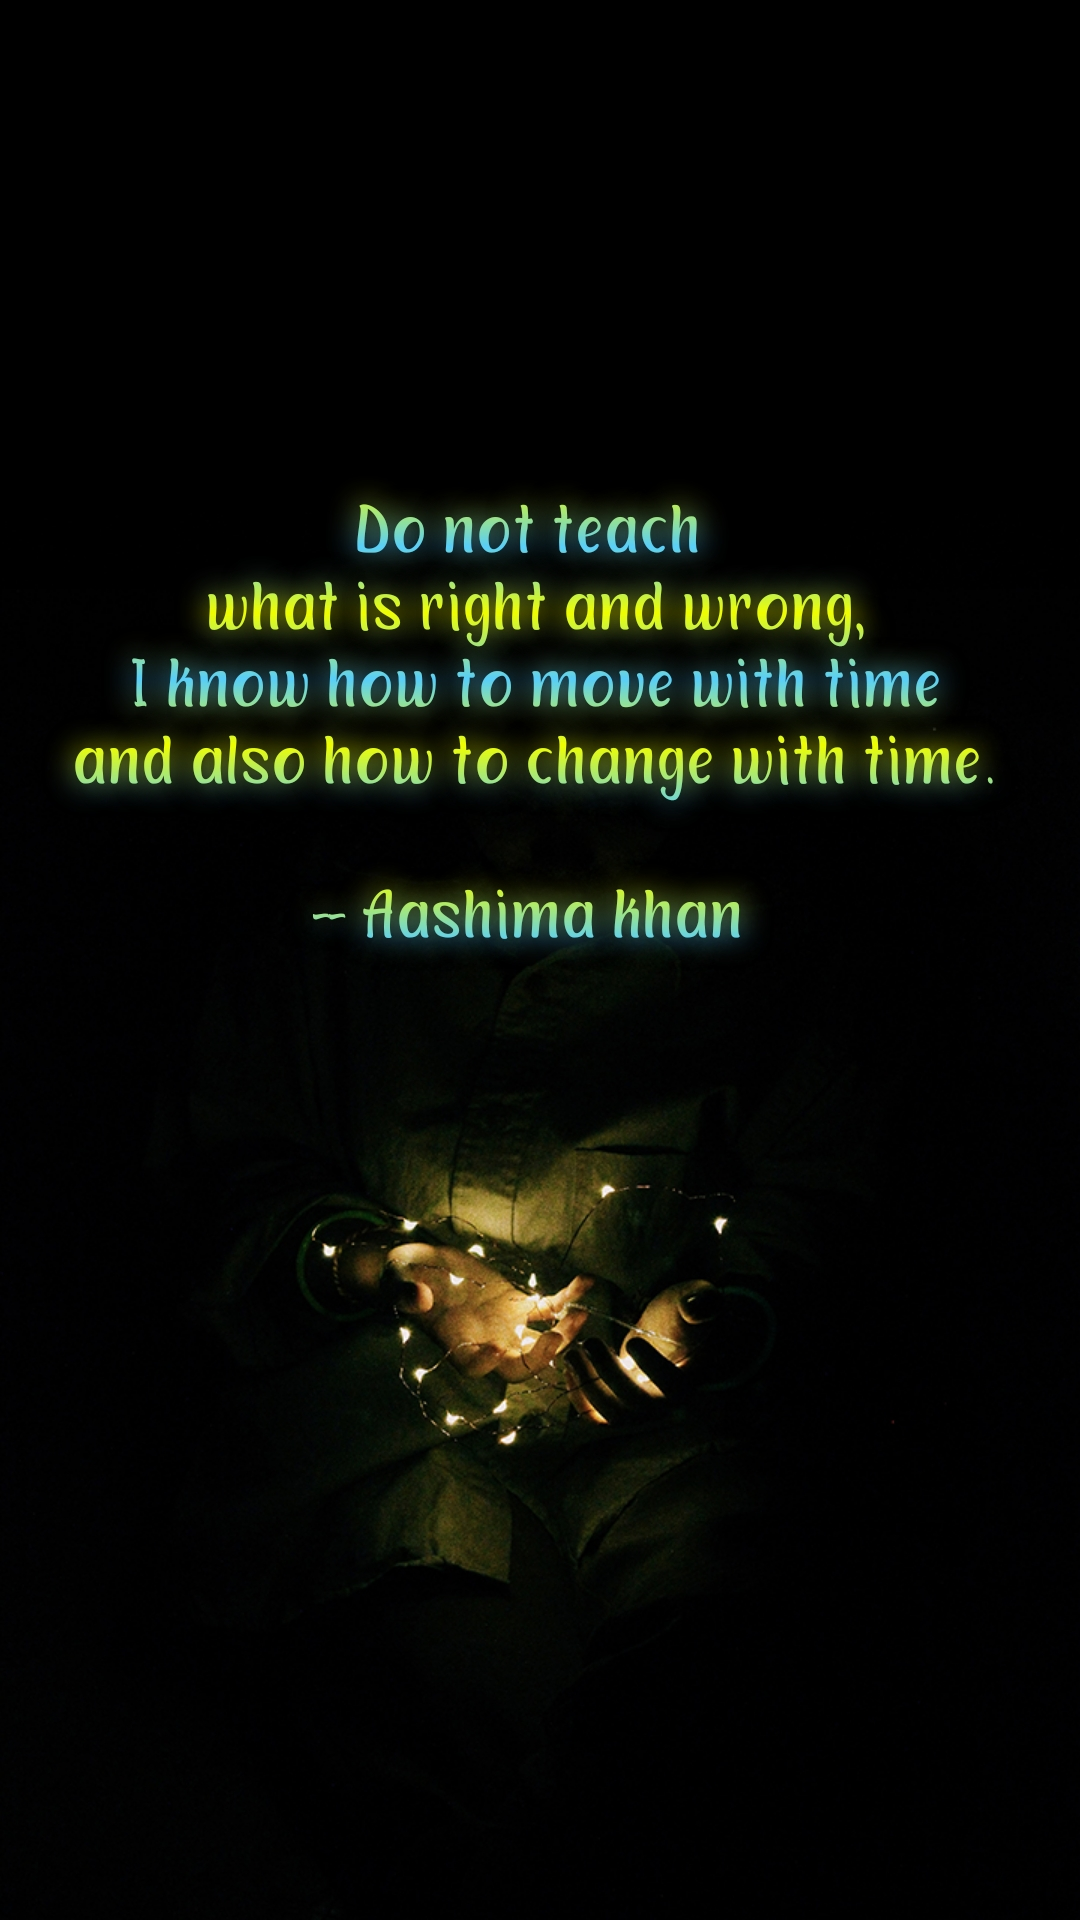 Do not teach  what is right and wrong,  I know how to move with time  and also how to change with time.  -- Aashima khan